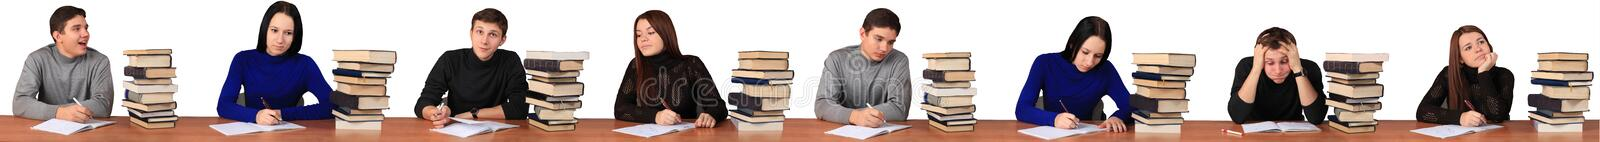 Students working on task stock photo